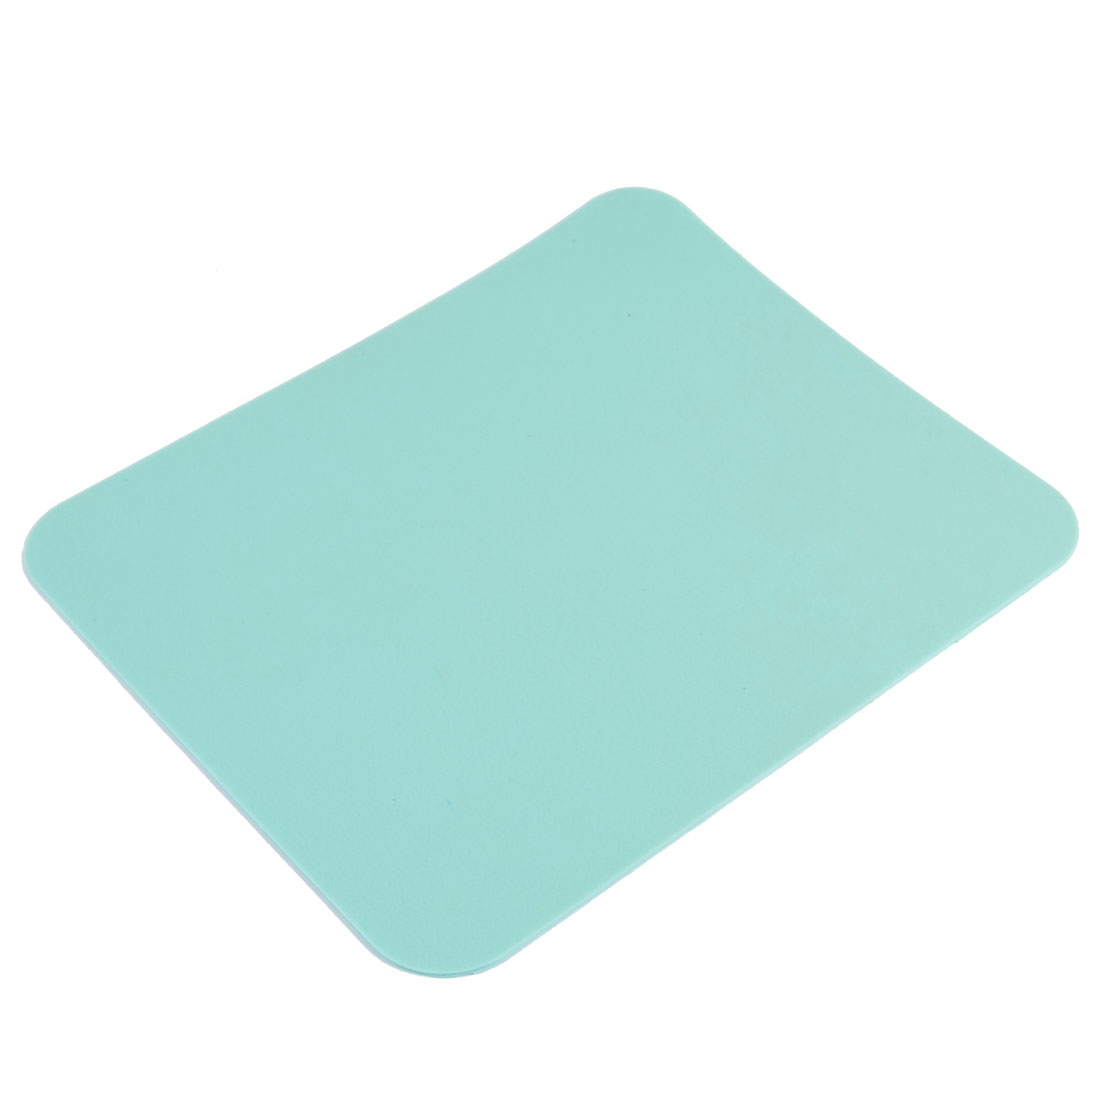 Notebook Desktop Computer 1mm Thickness Optical Mouse Pad Blue for Gaming